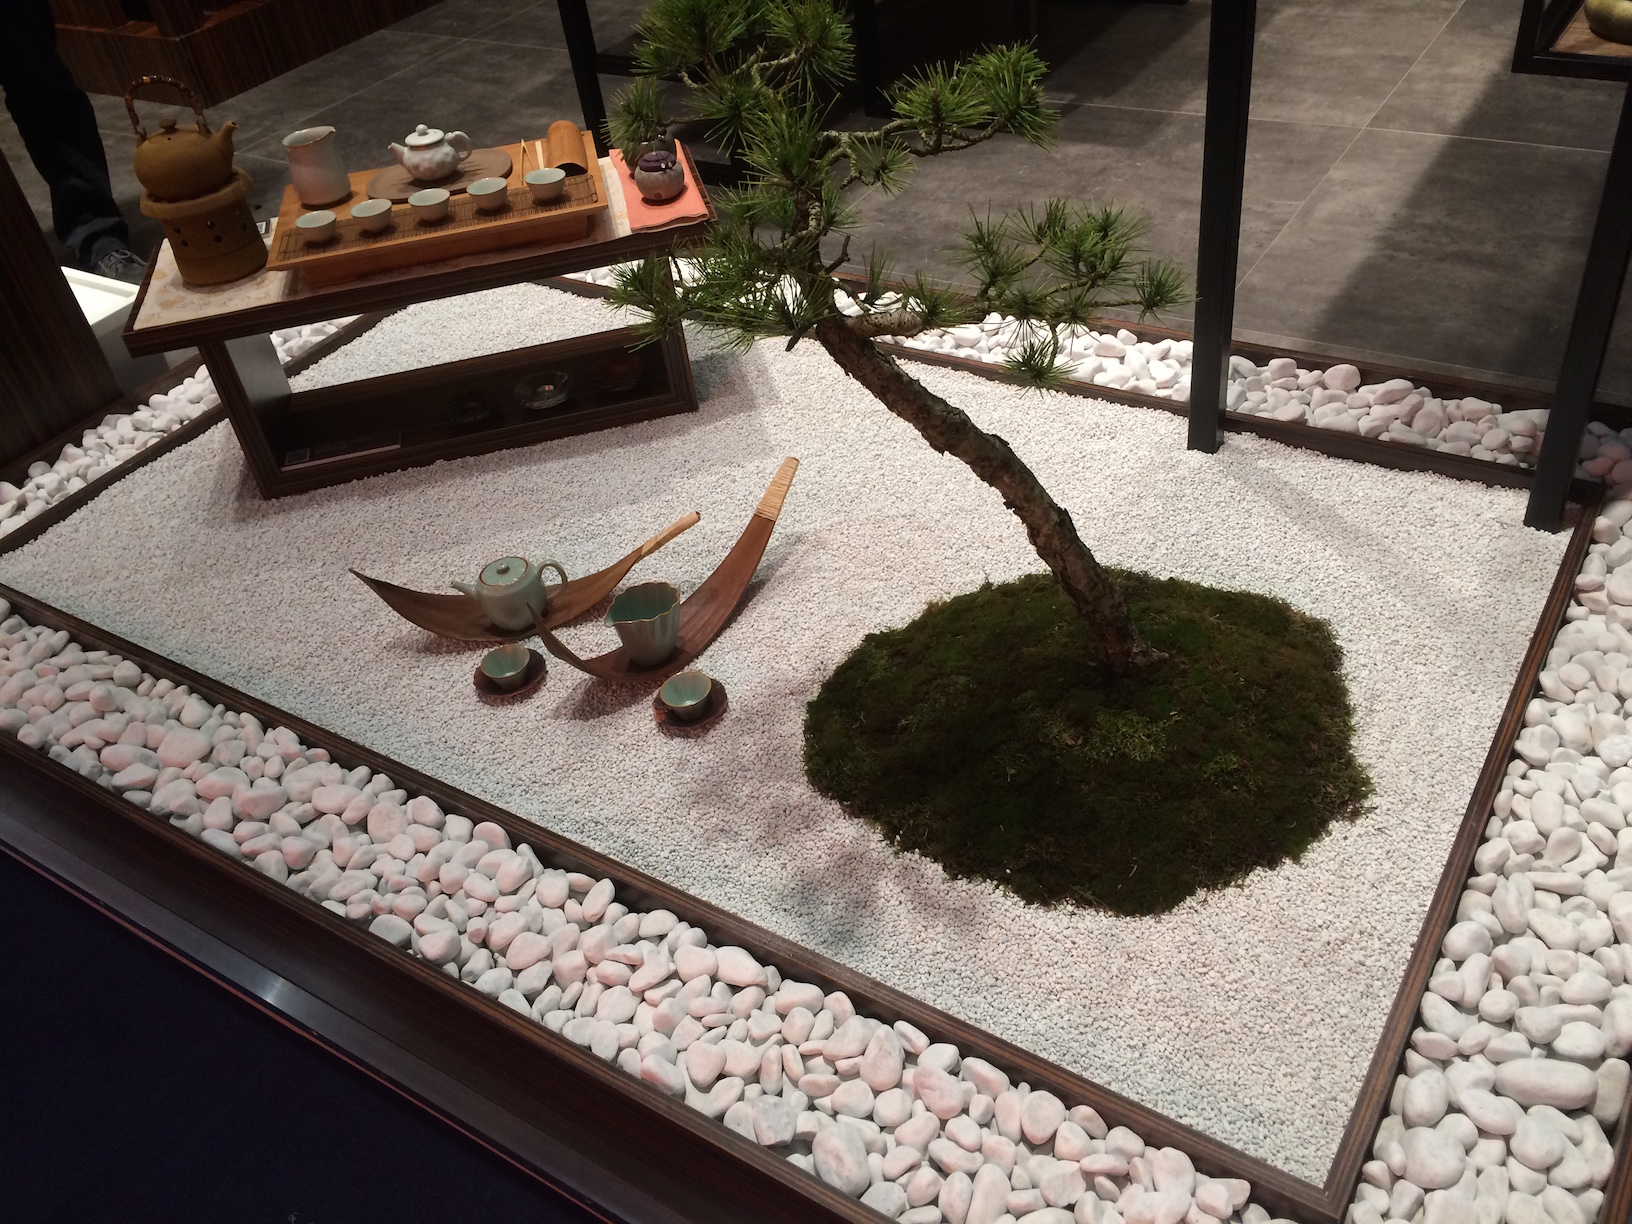 On y tait le salon des arts de la table de francfort for Mini jardin japonais d interieur